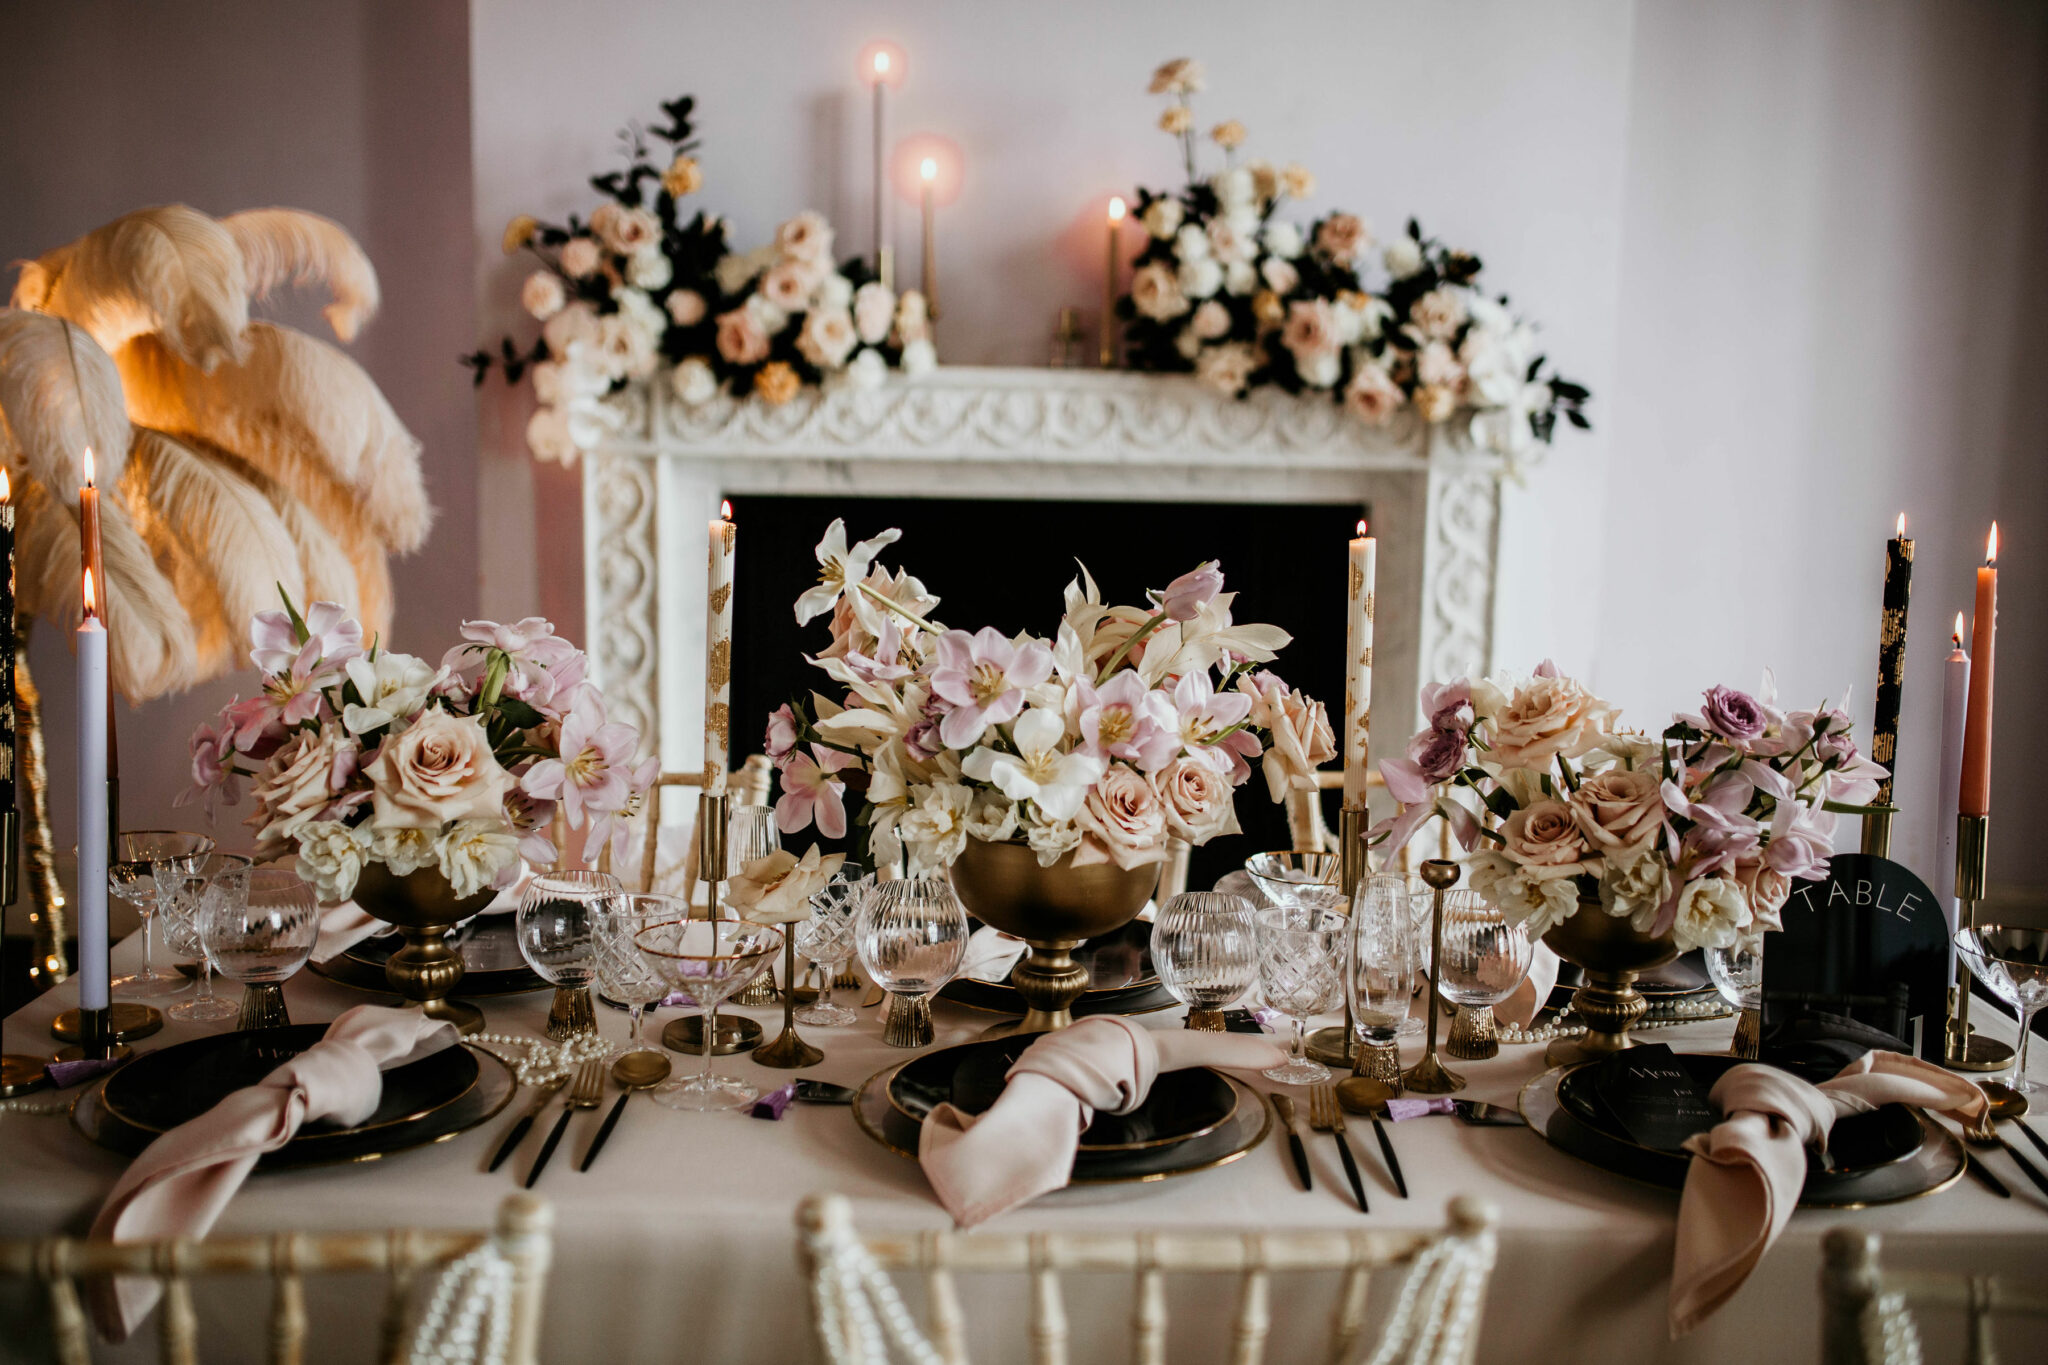 Have you ever wondered what a wedding stylist is?